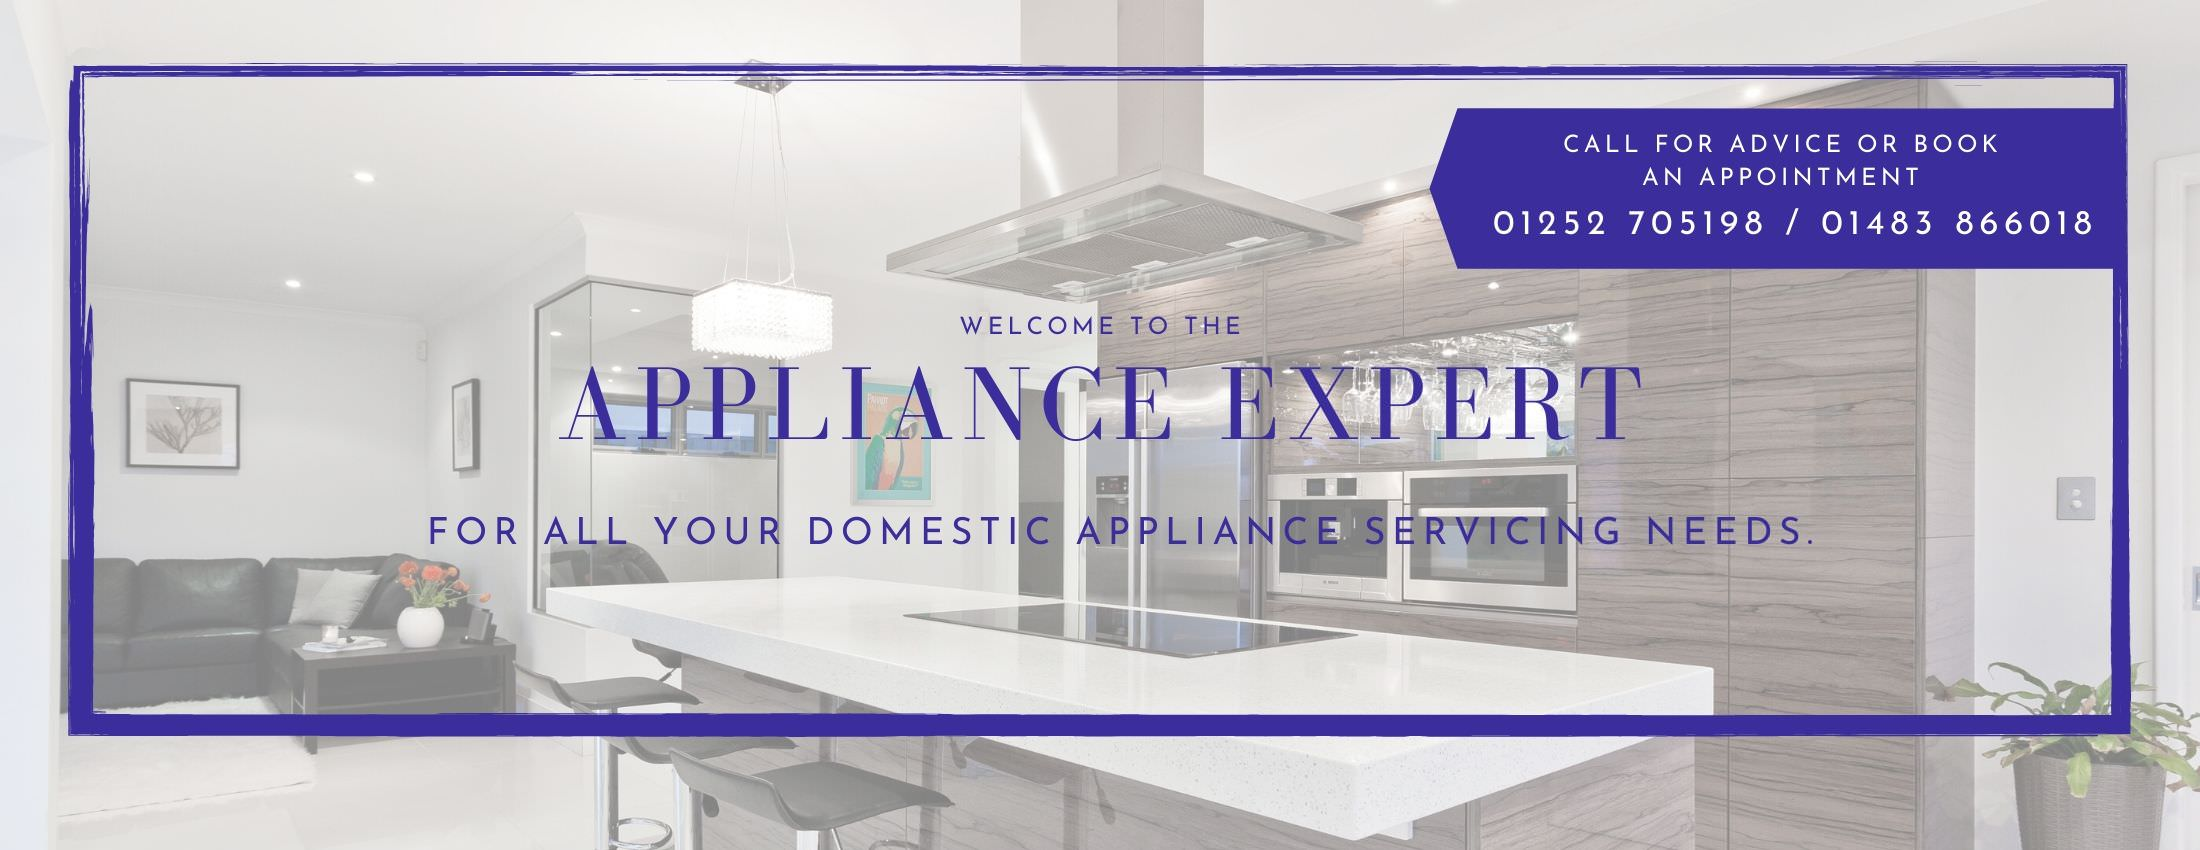 Welcome to the Appliance Expert